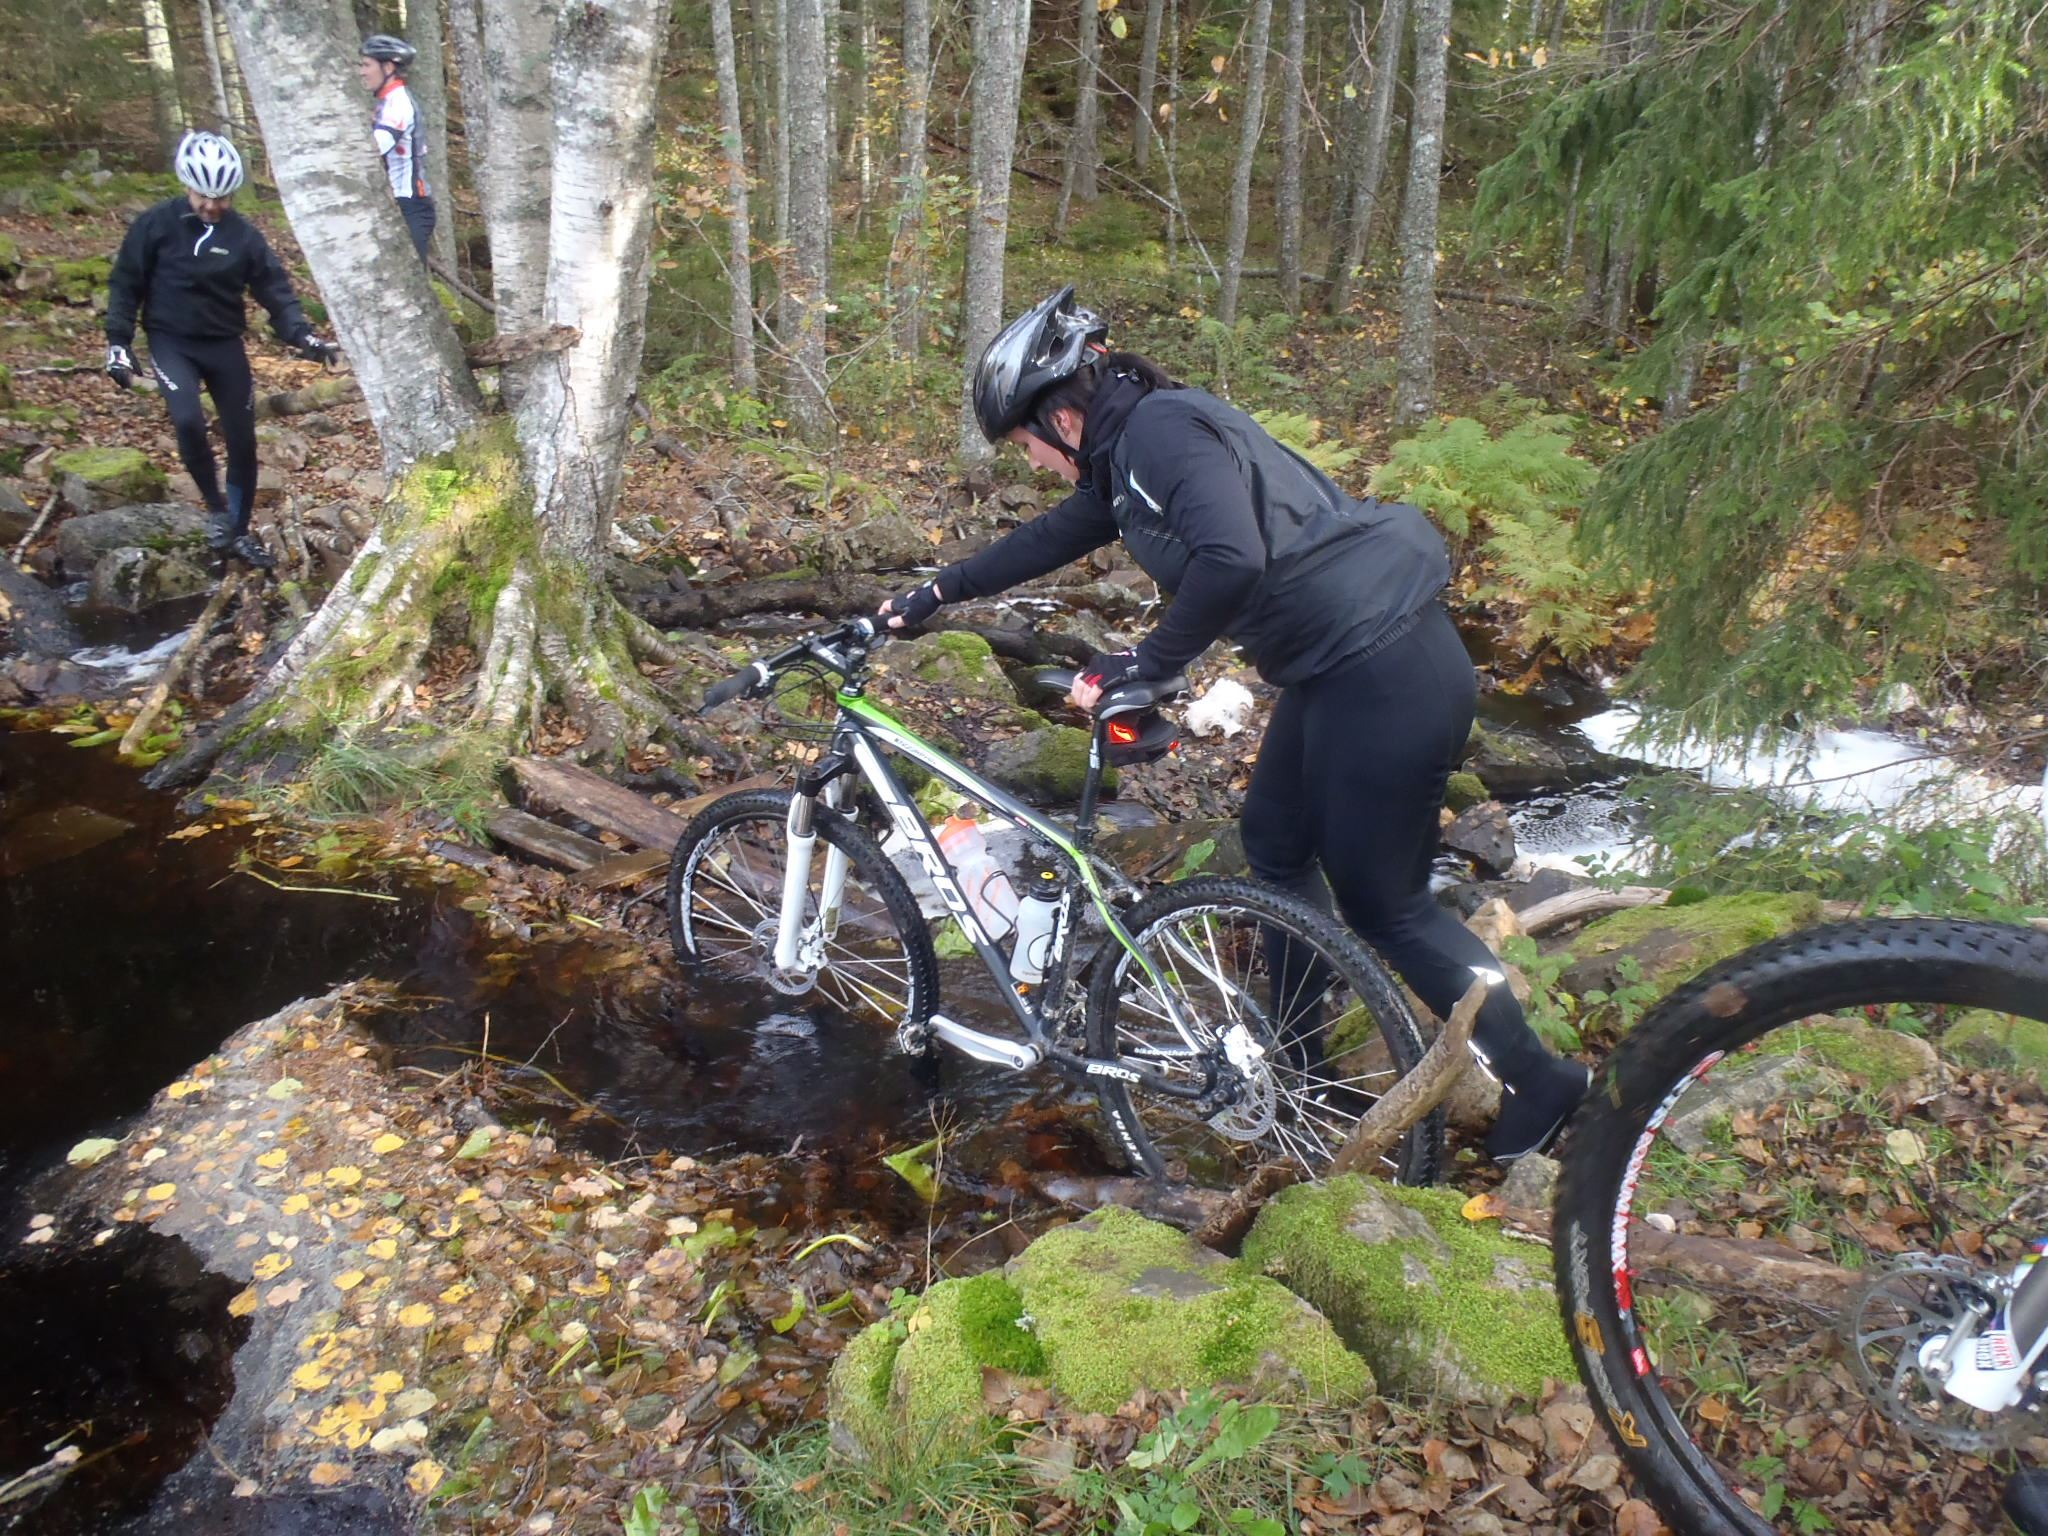 Biking on trails: tricky trail biking along lake Helgasjön